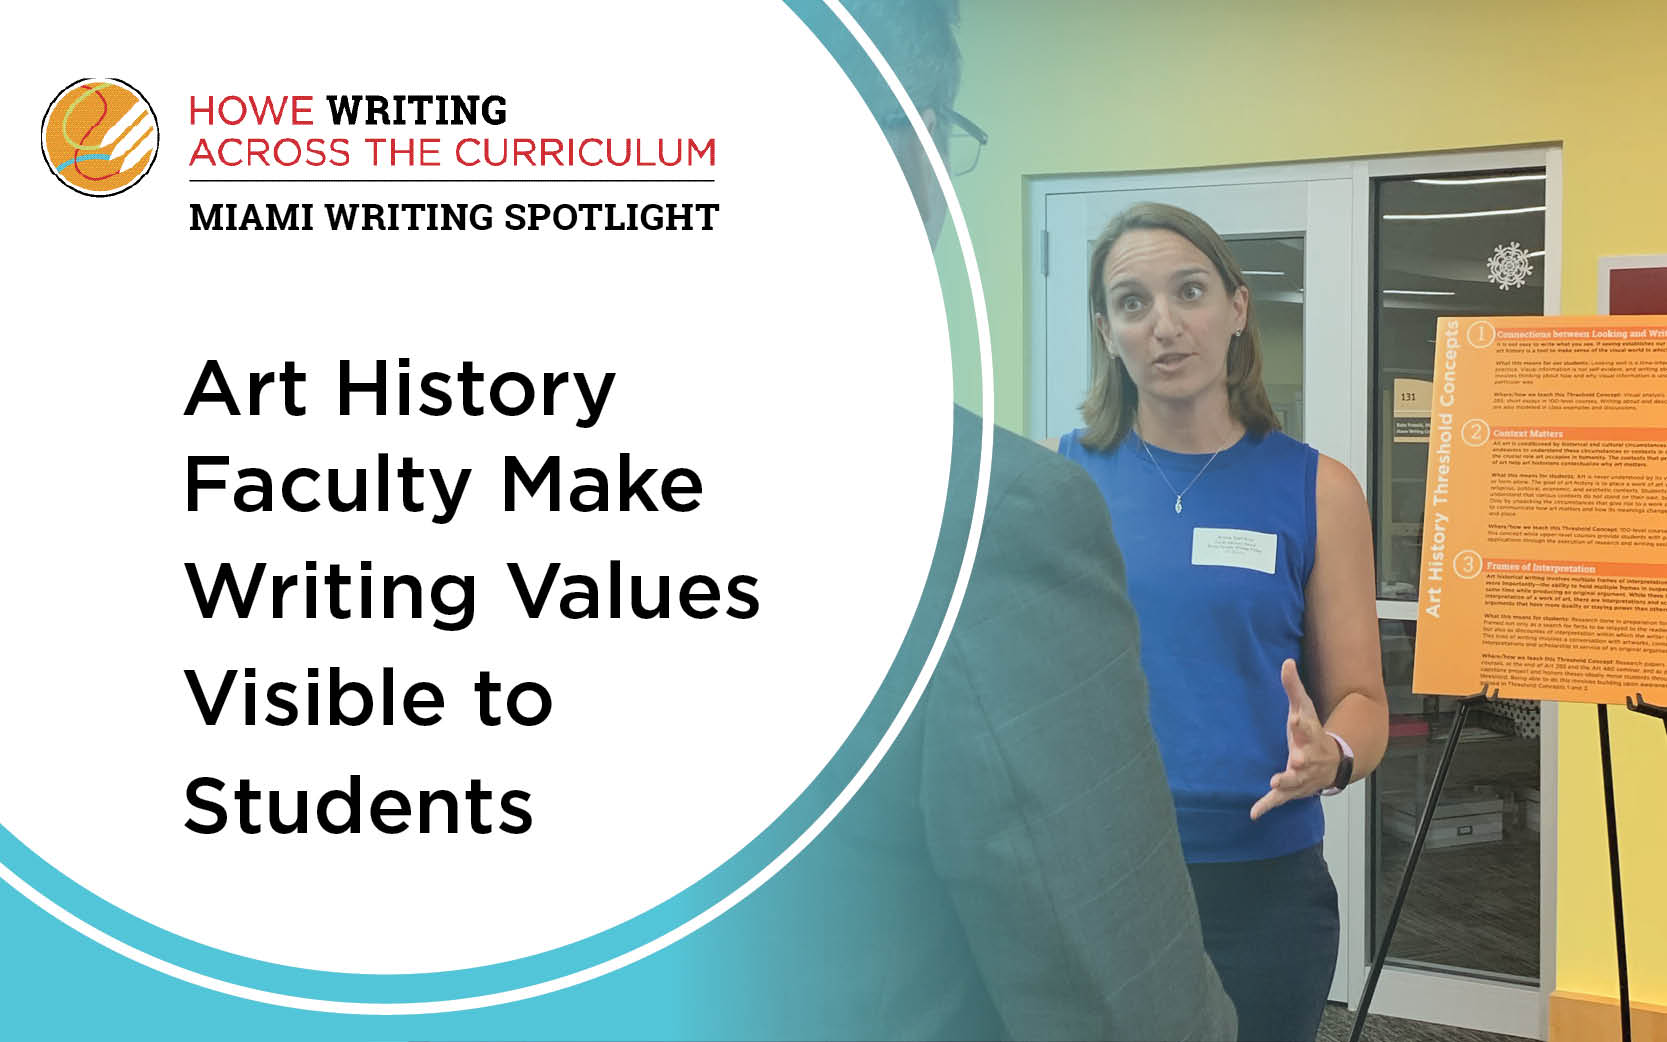 Art history faculty make writing values visible to students.